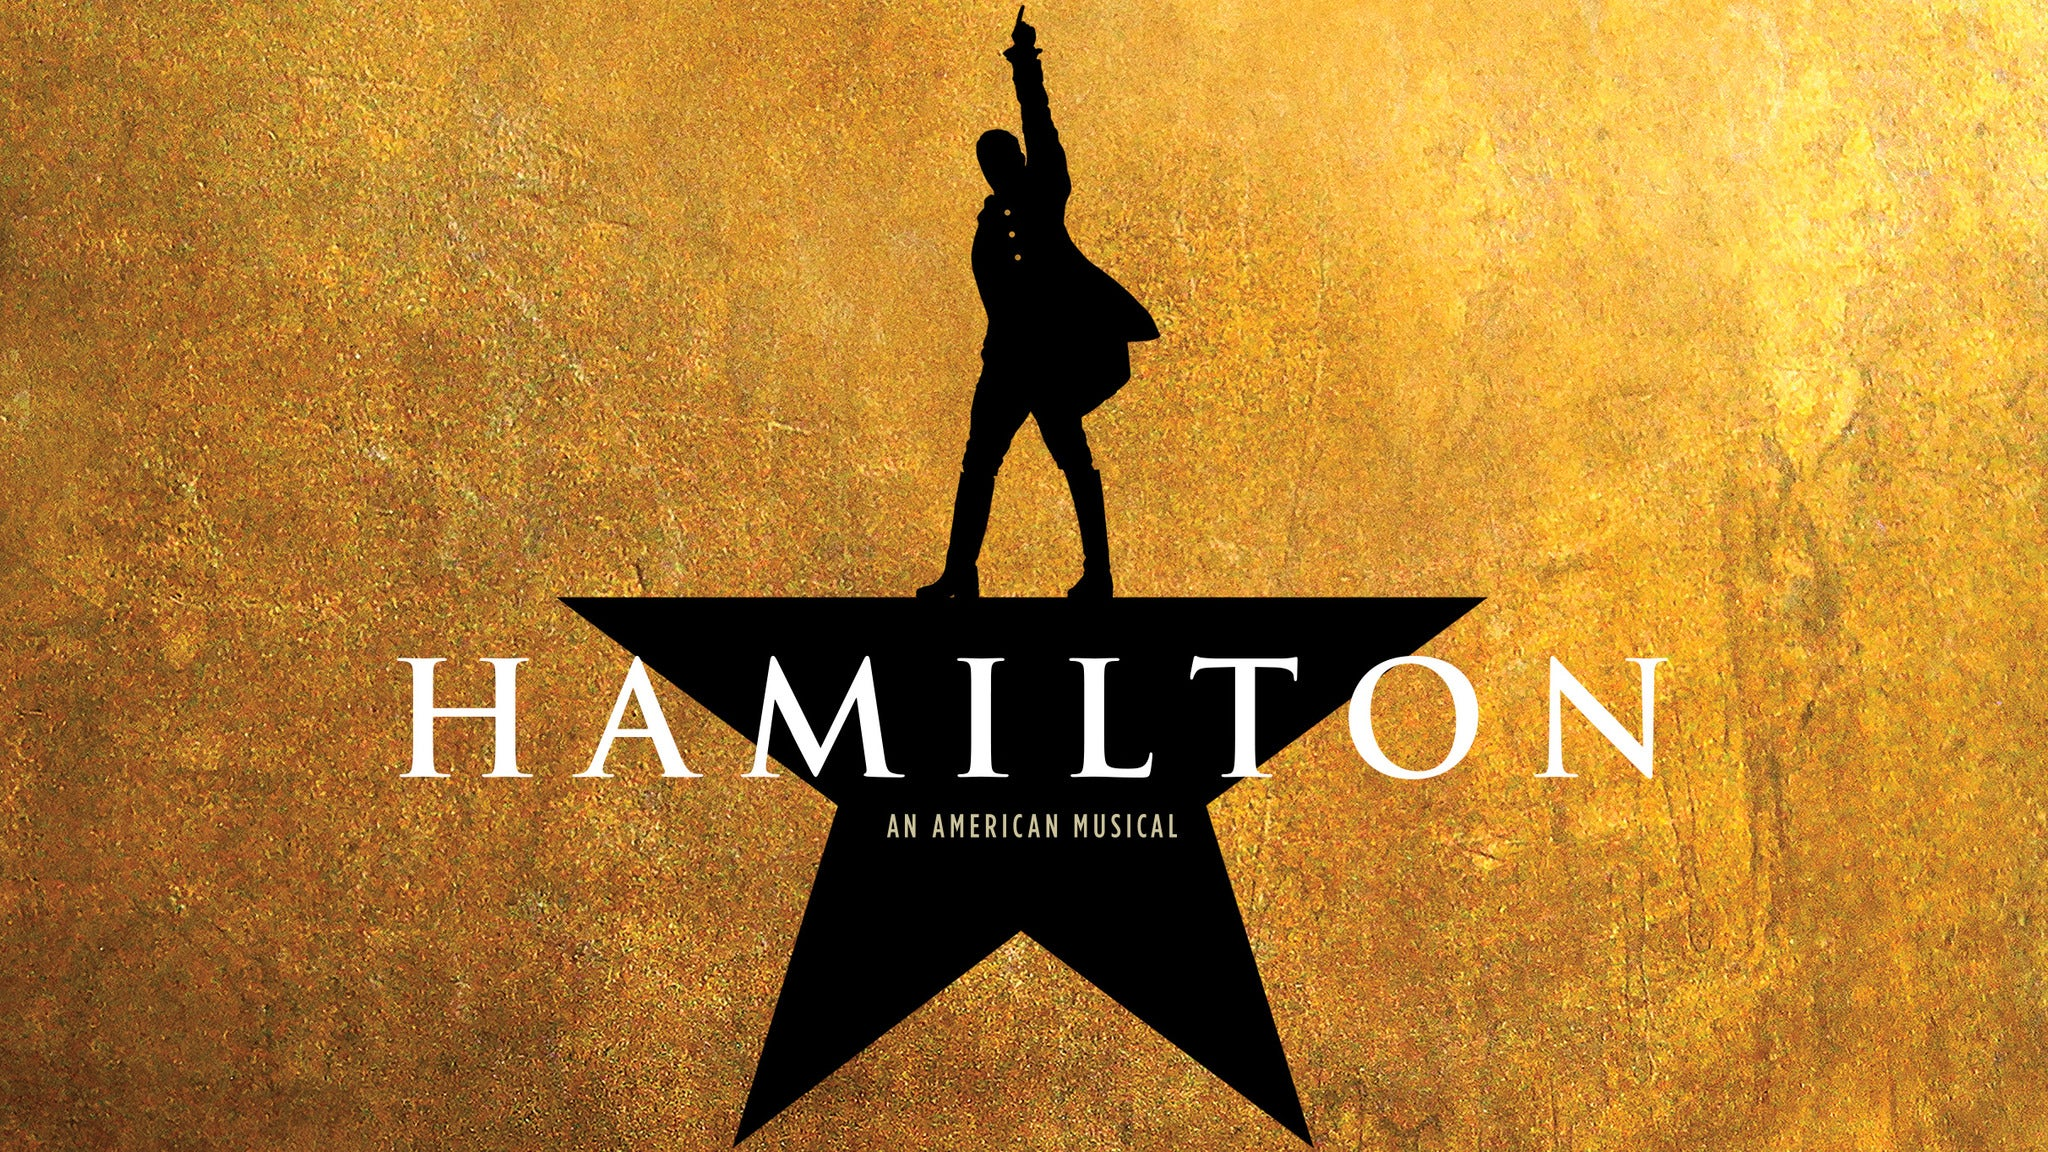 SORRY, THIS EVENT IS NO LONGER ACTIVE<br>Hamilton (Chicago) at The PrivateBank Theatre - Chicago, IL 60602